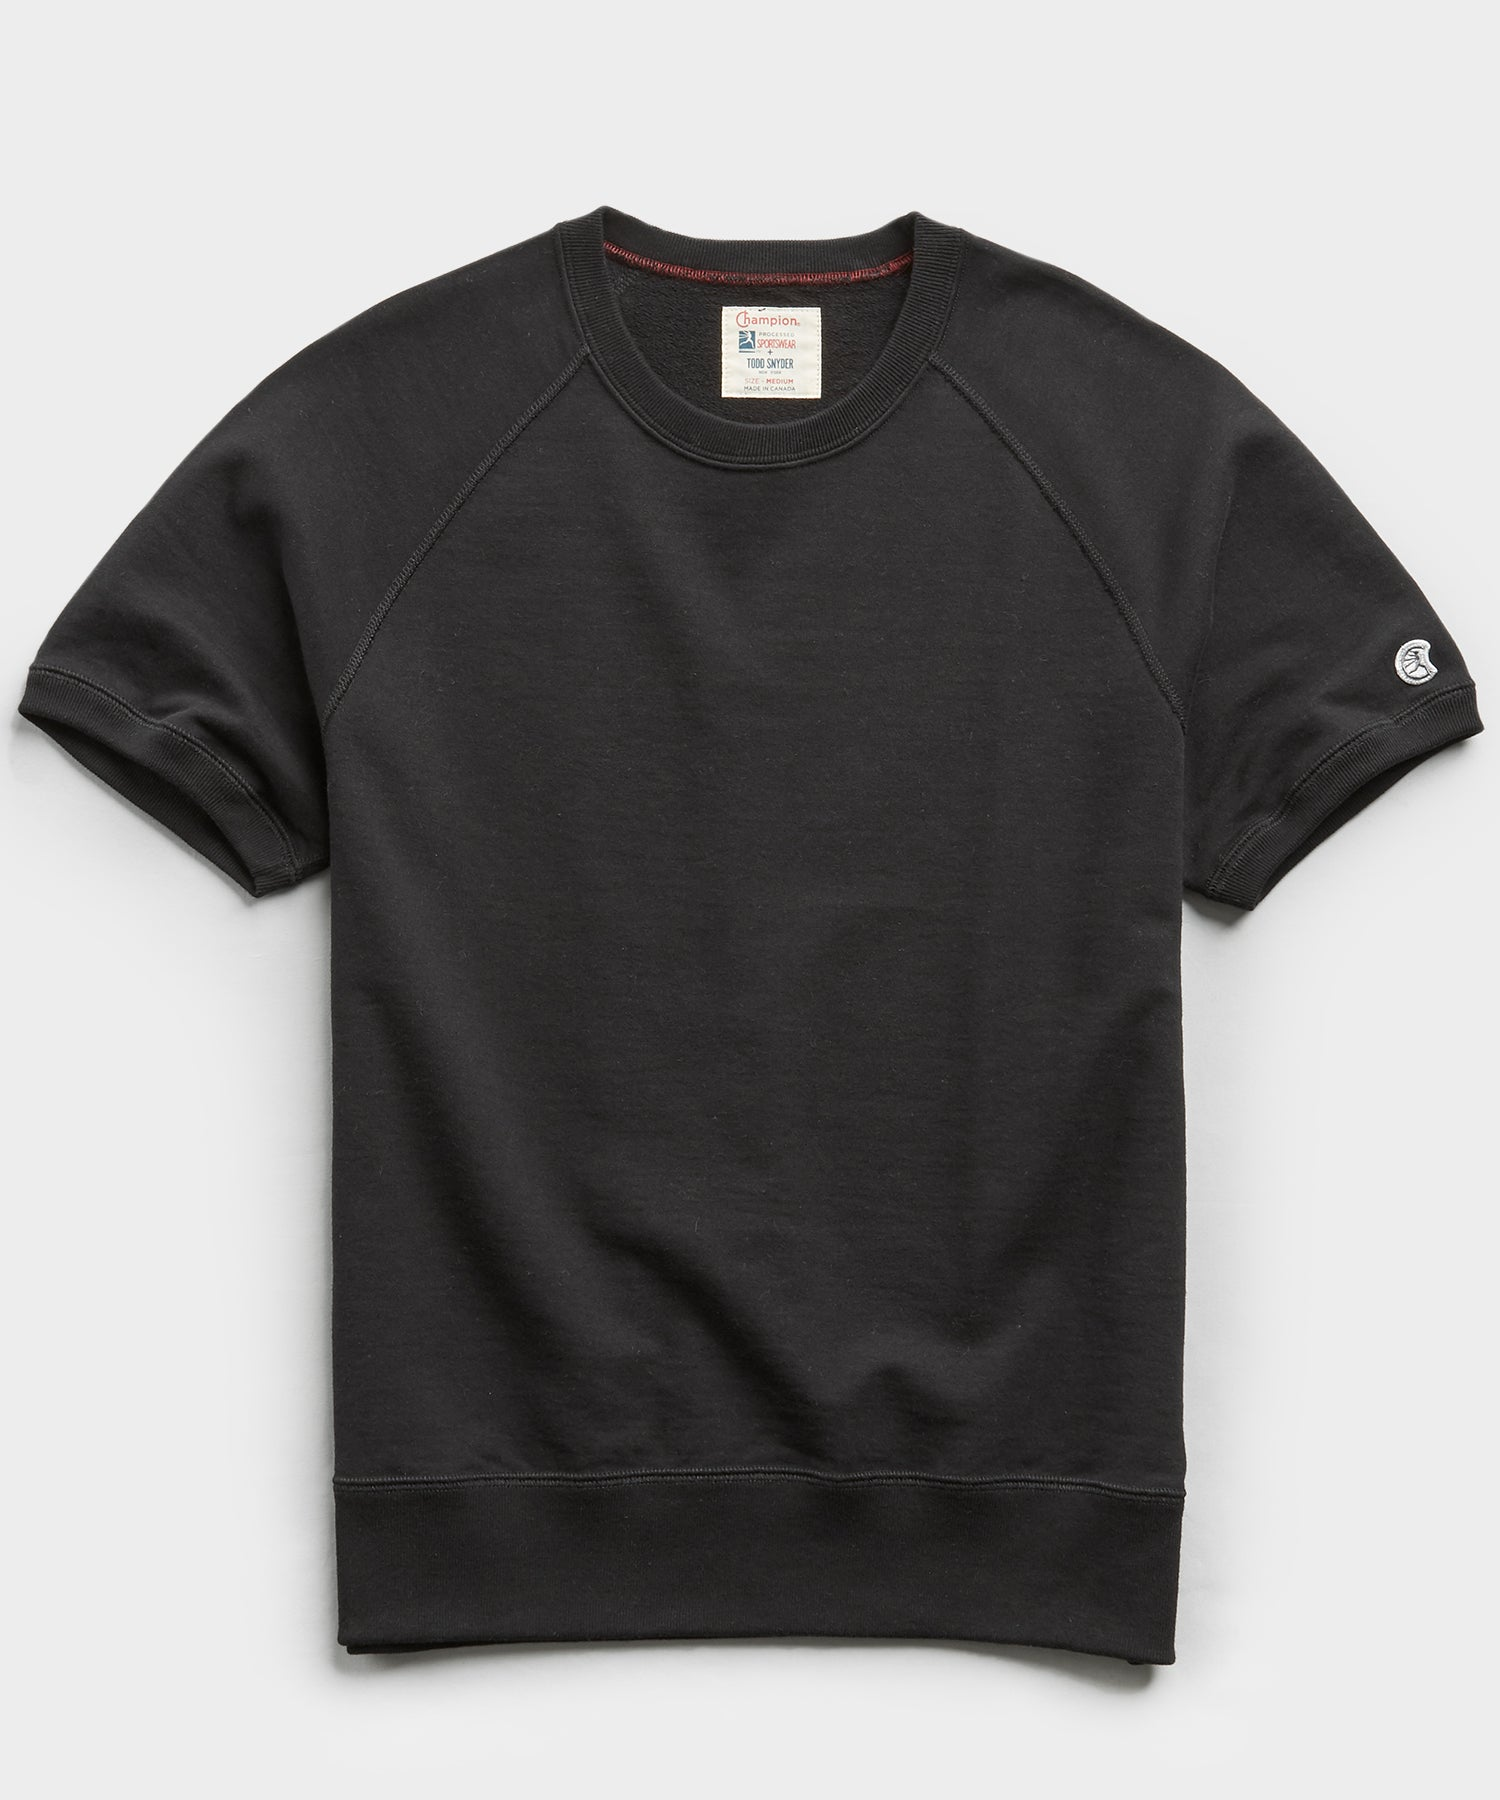 Terry Short Sleeve Sweatshirt in Black